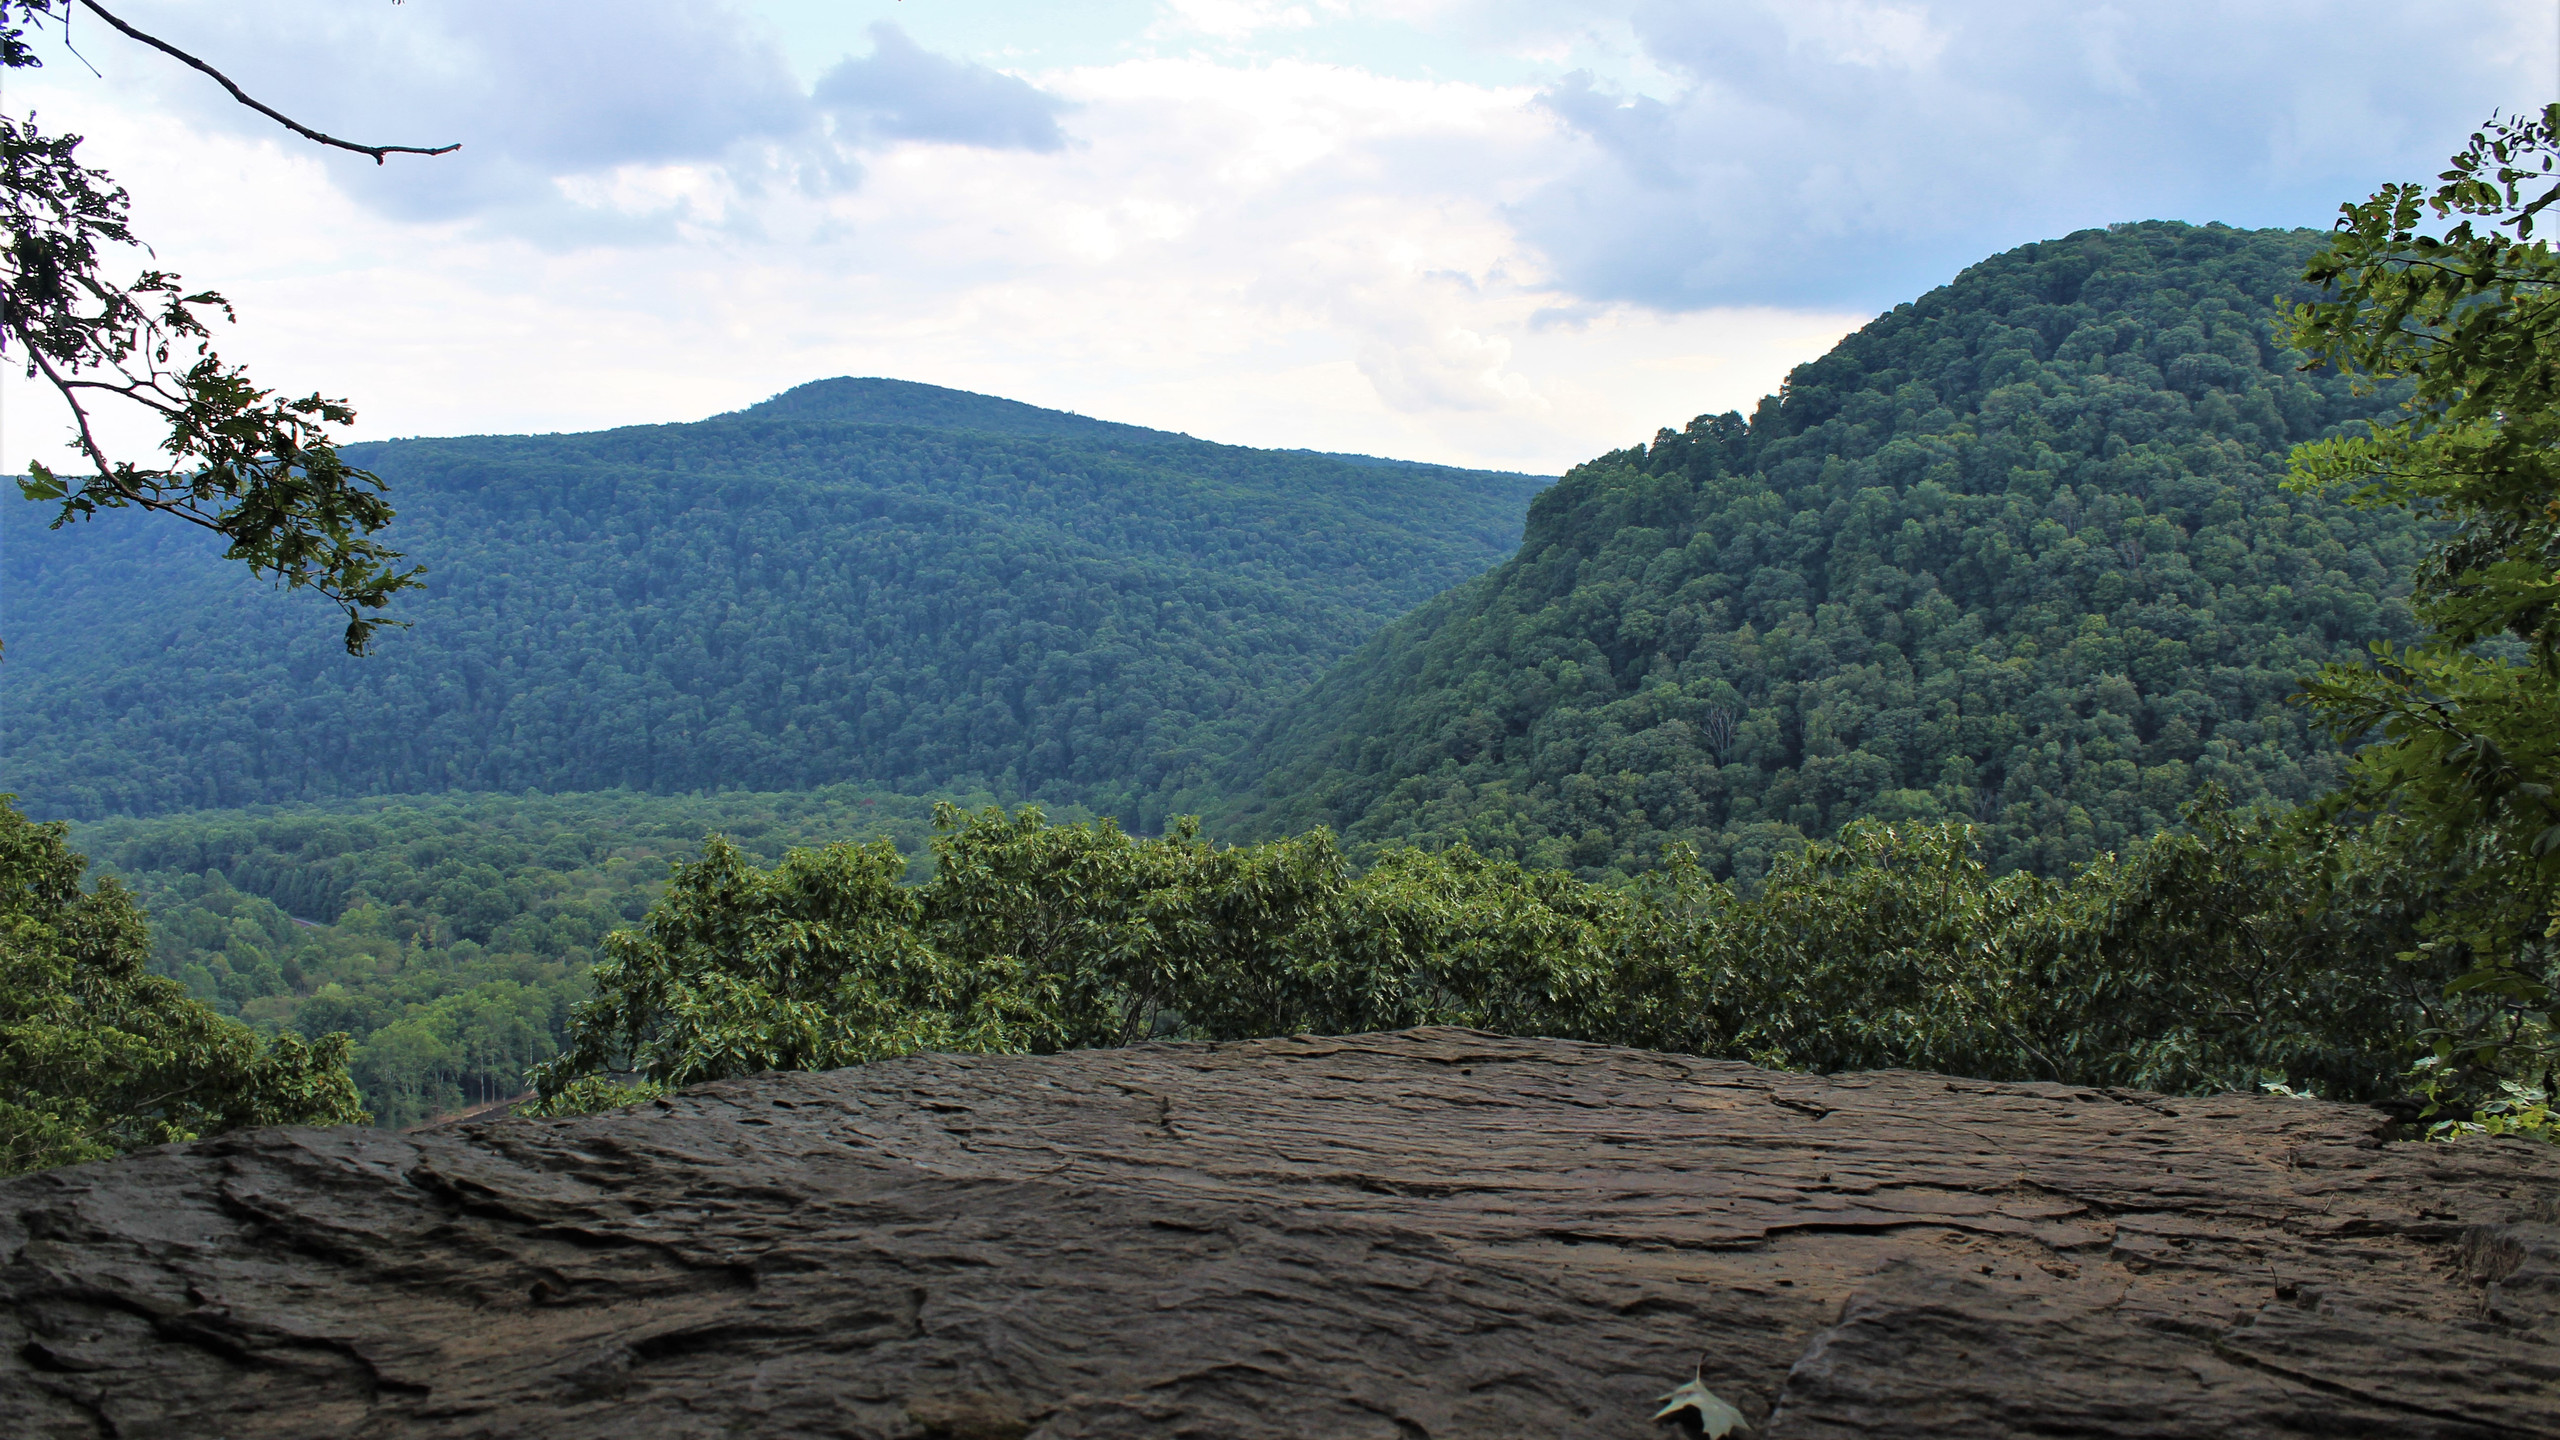 Youghiogheny Gorge Overlook